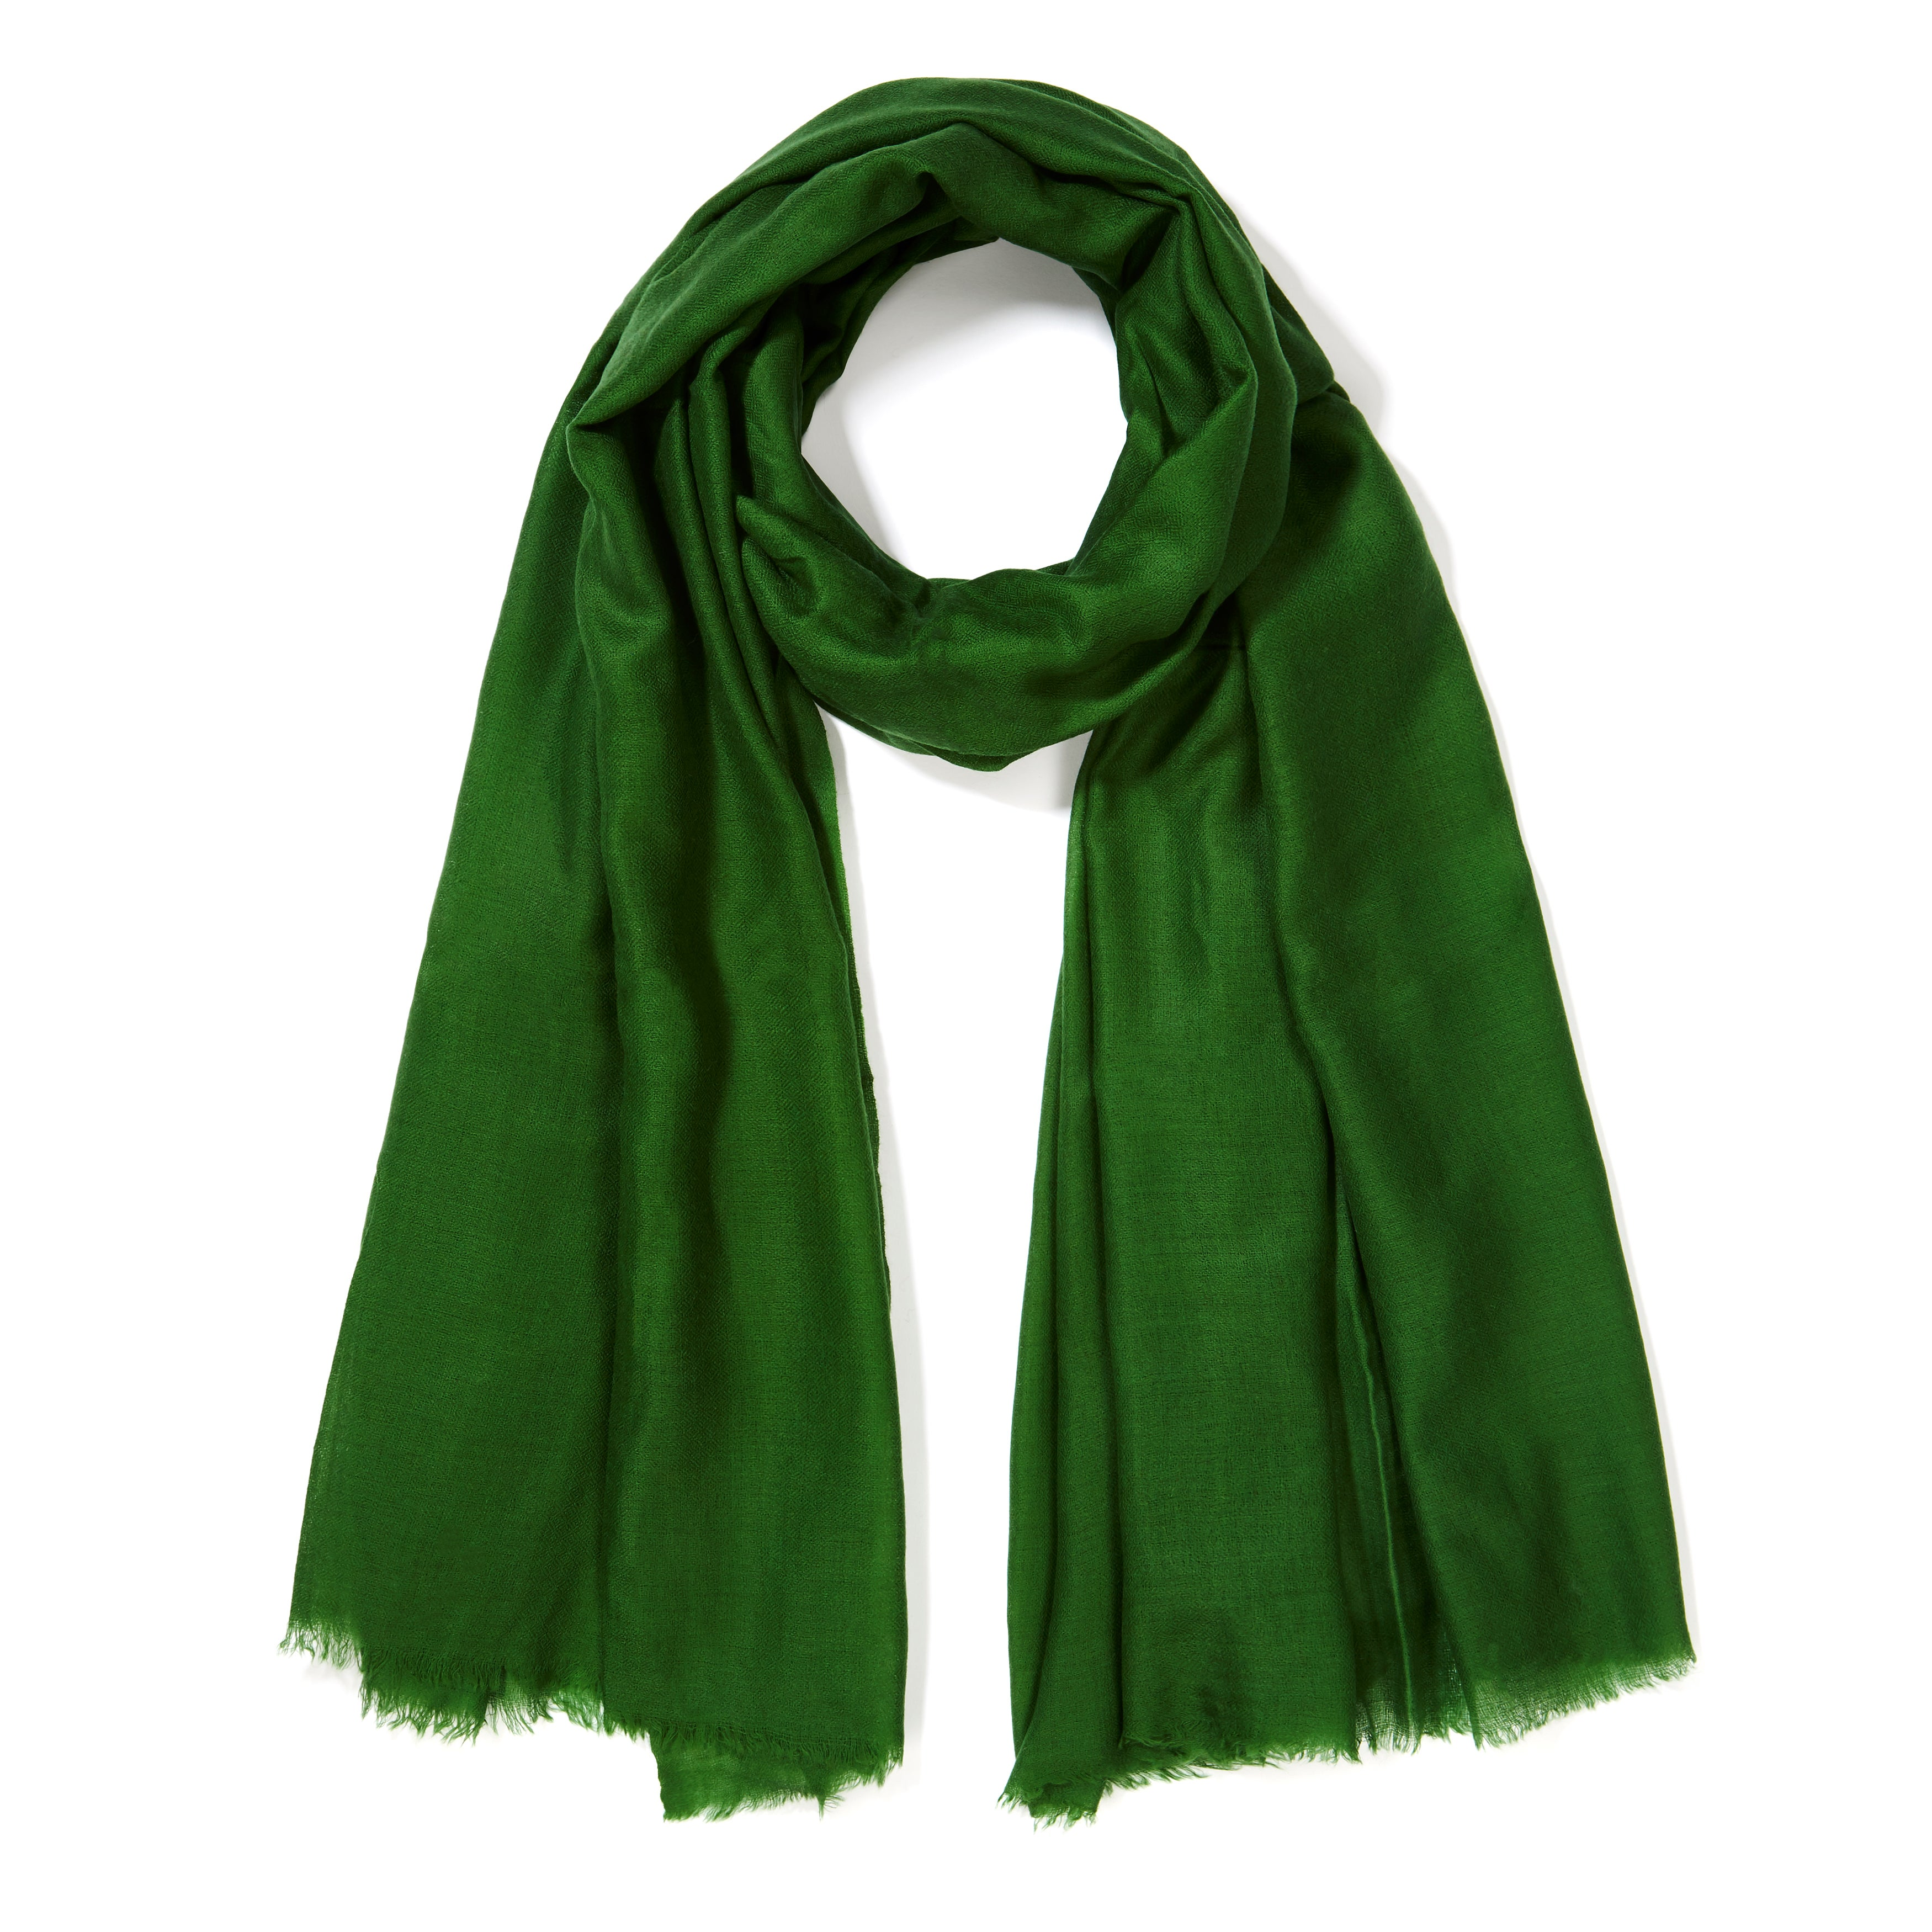 996ef79ba Lightweight 100% Cashmere Shawl in Green at 1stdibs